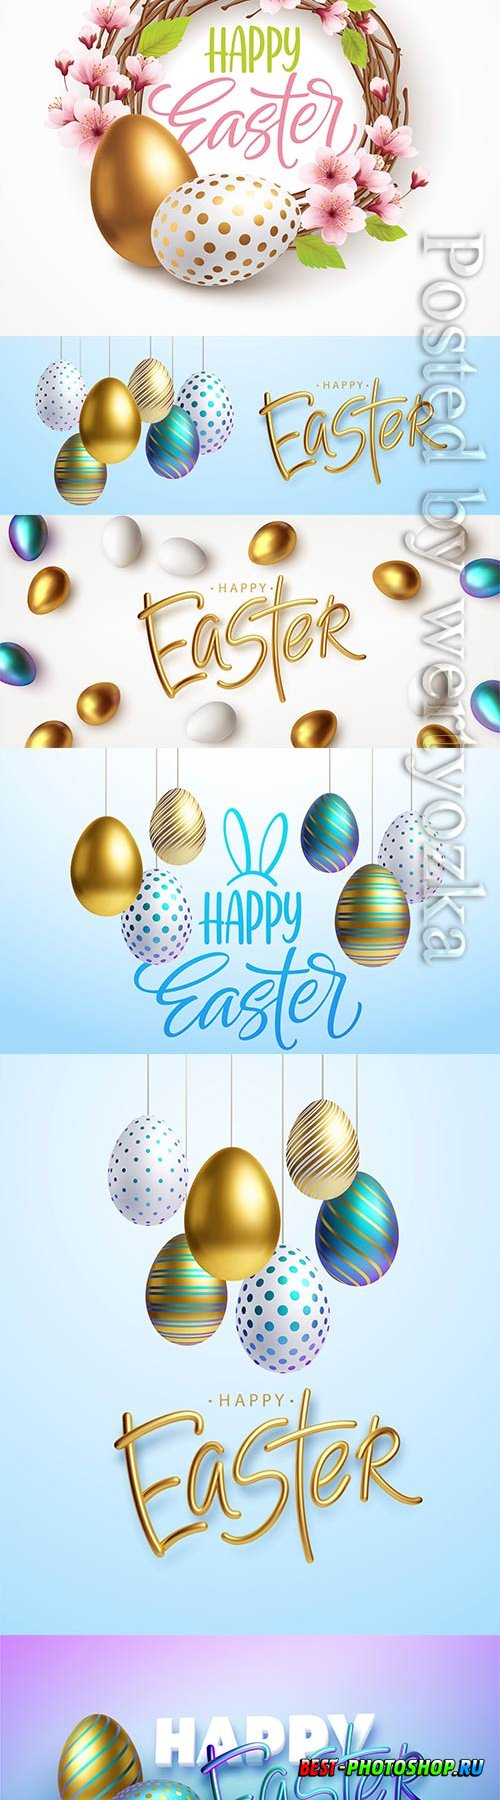 Happy easter on a background of easter eggs